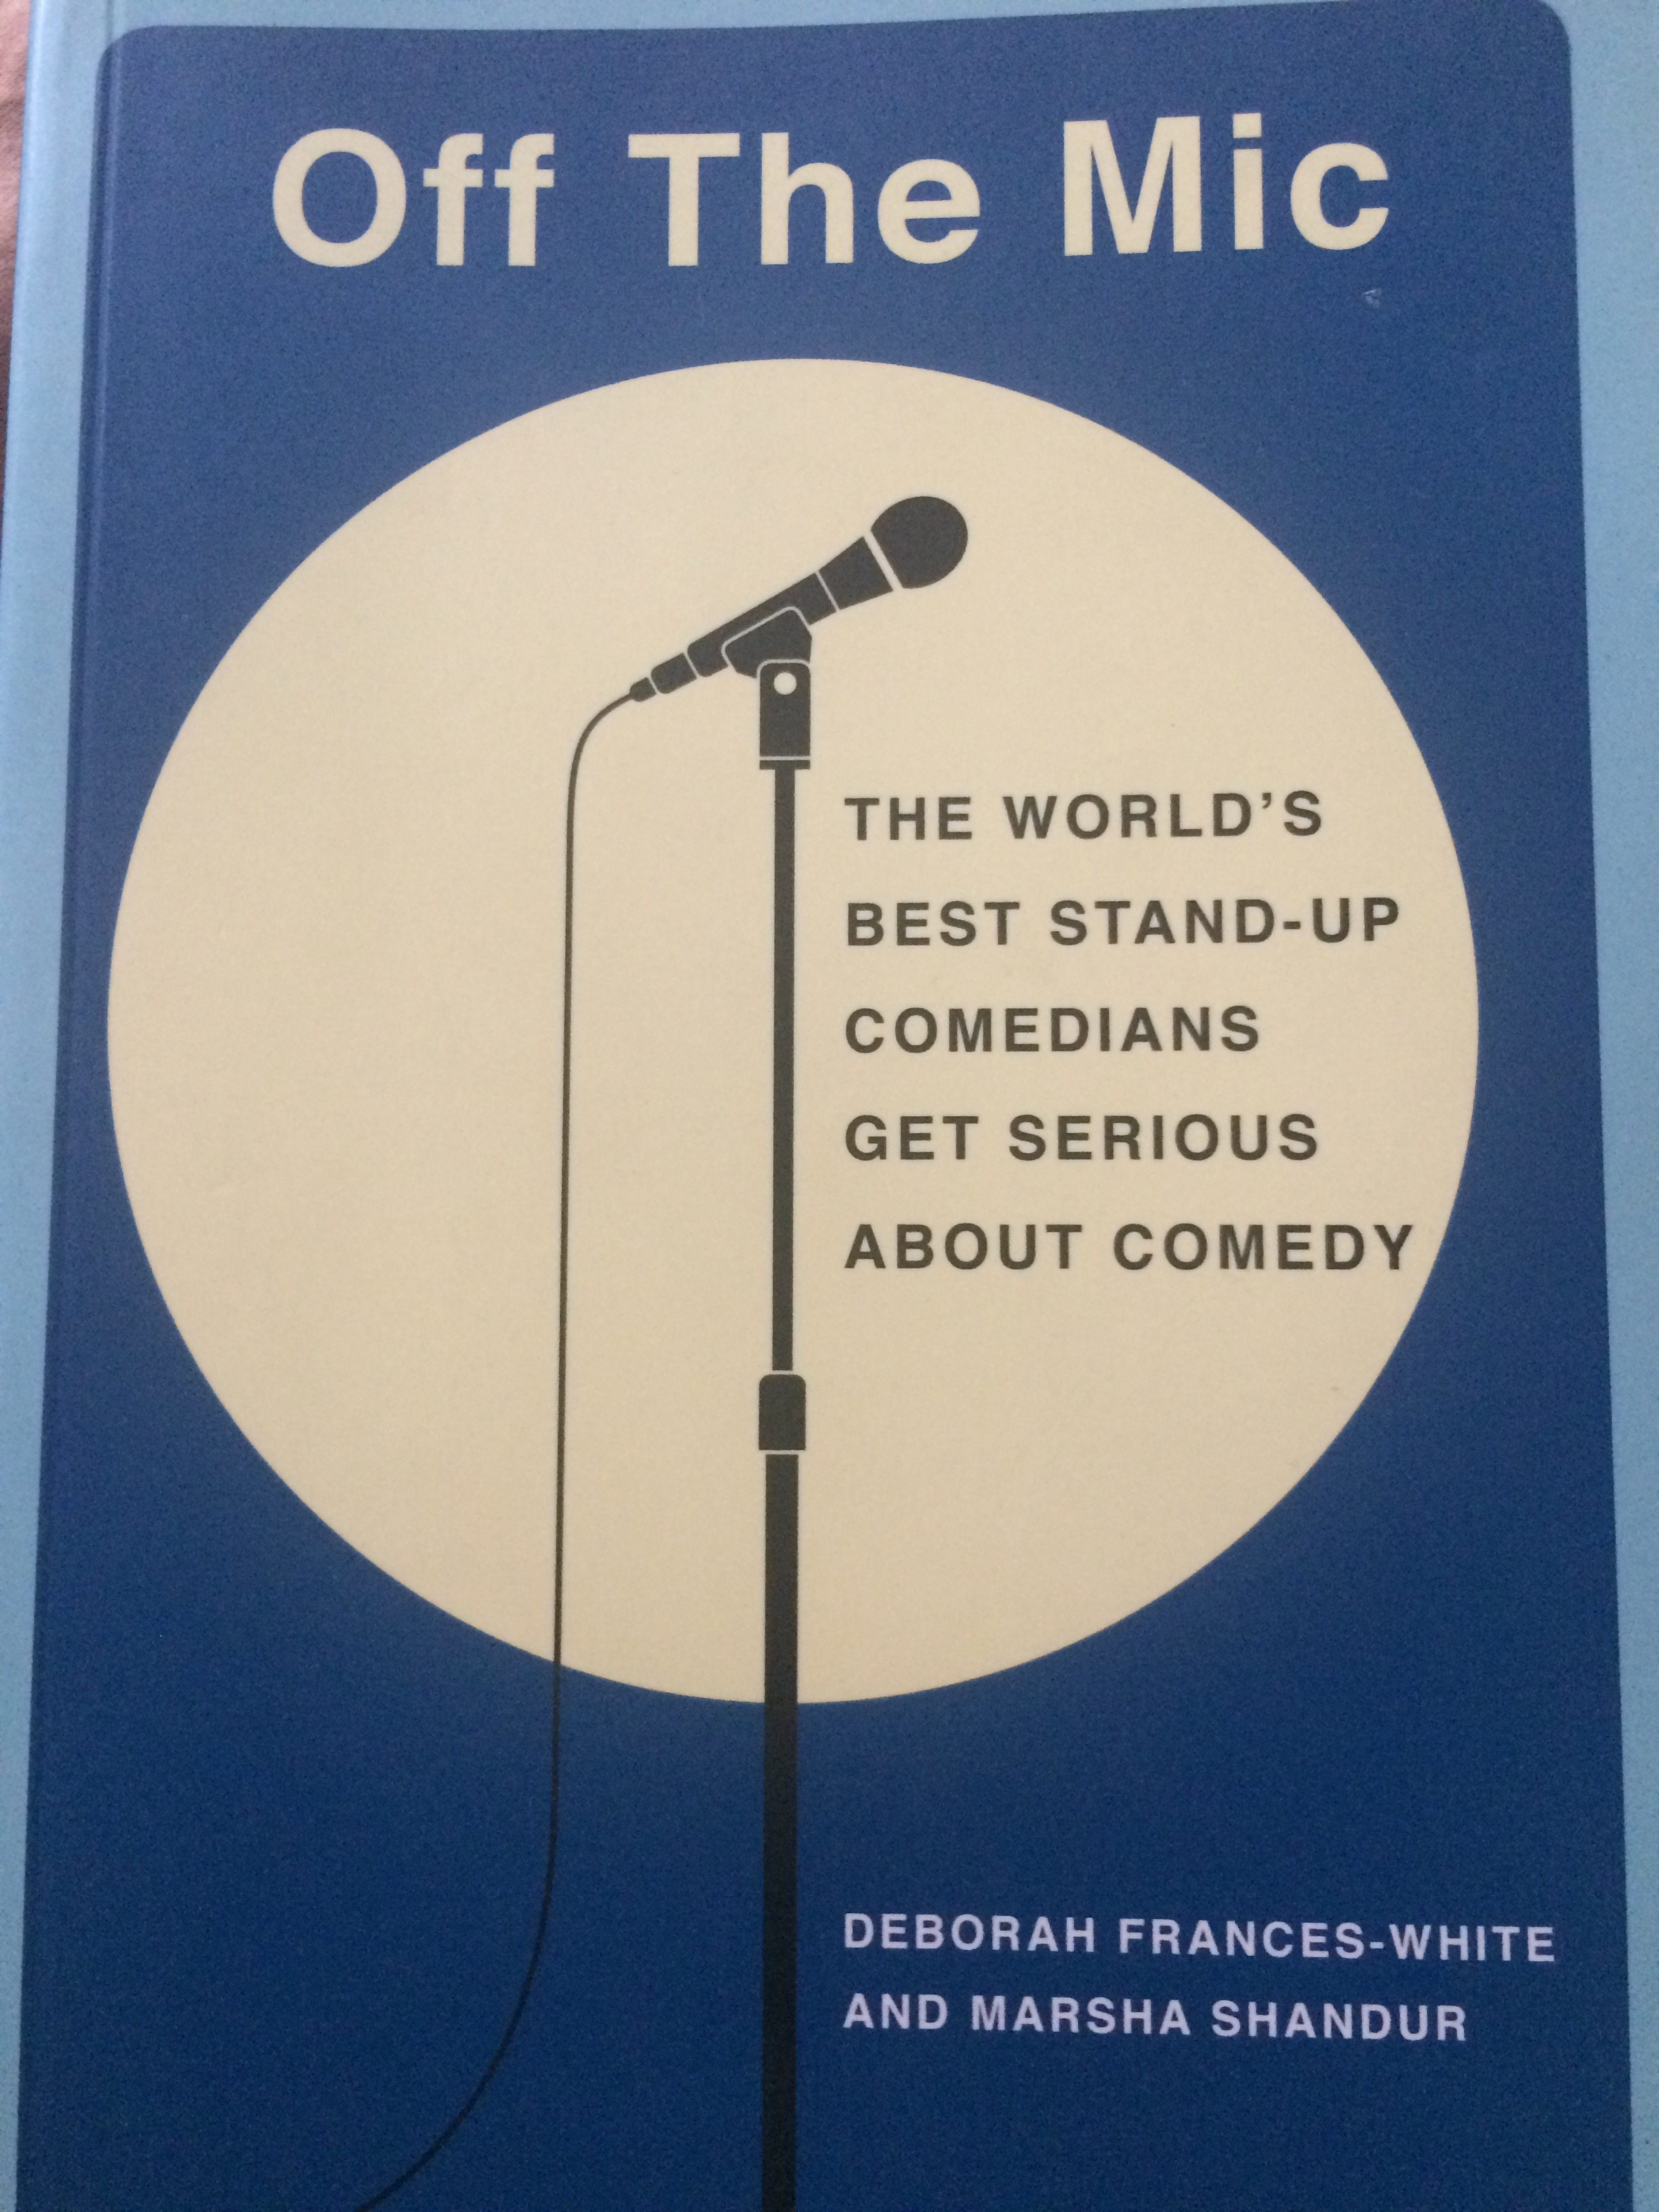 I like any book that goes into the mechanics of joke-writing with quotes from respectable comics. This is a good one.